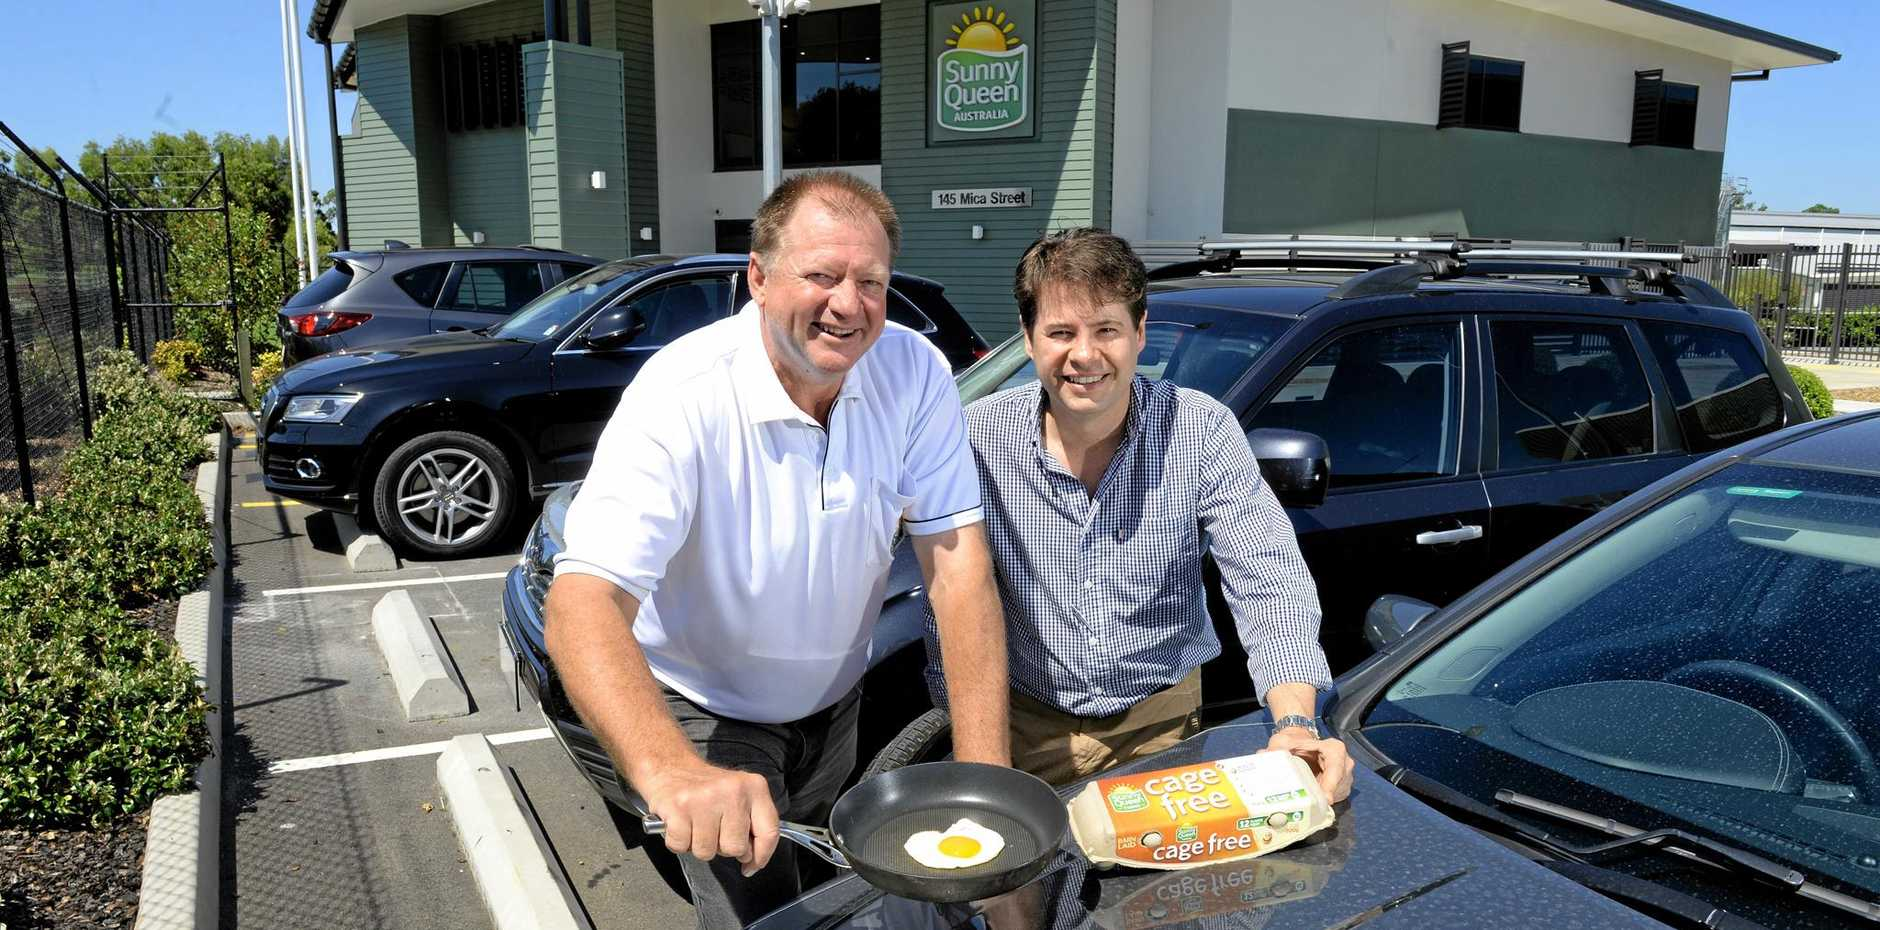 HOT PLATE: Sunny Queen Farms CFO Glenn Trimble and RPS Planning Principal Simon Pollock are using the sun as power.